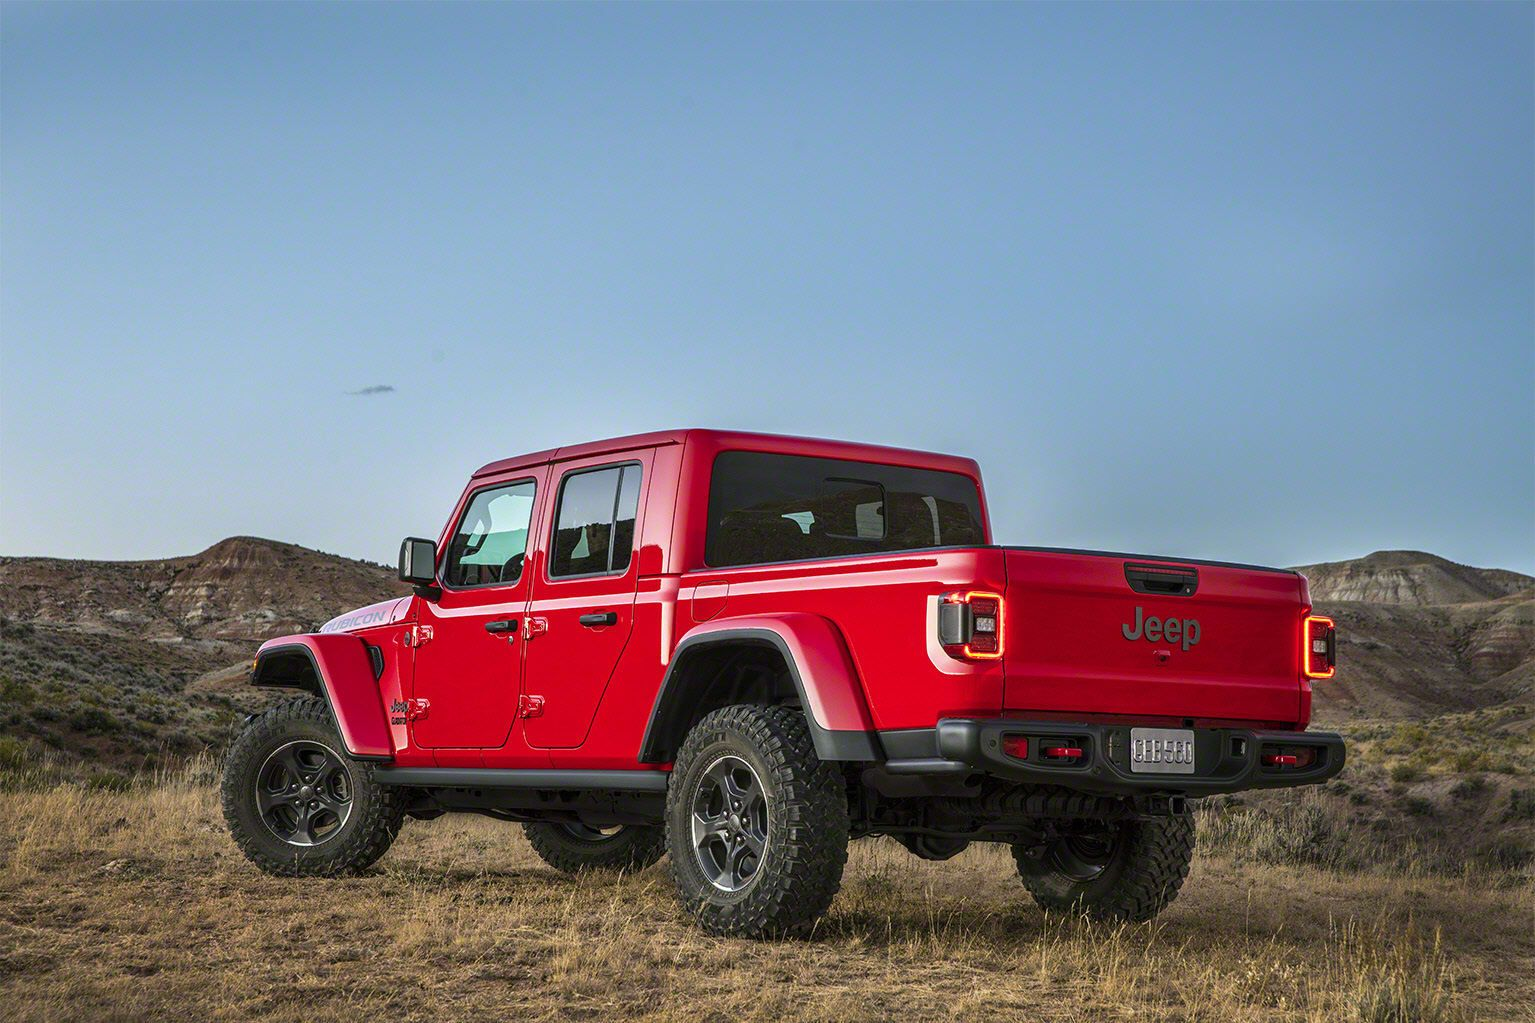 2020 Jeep Gladiator More Than A Wrangler Pickup News From Cars